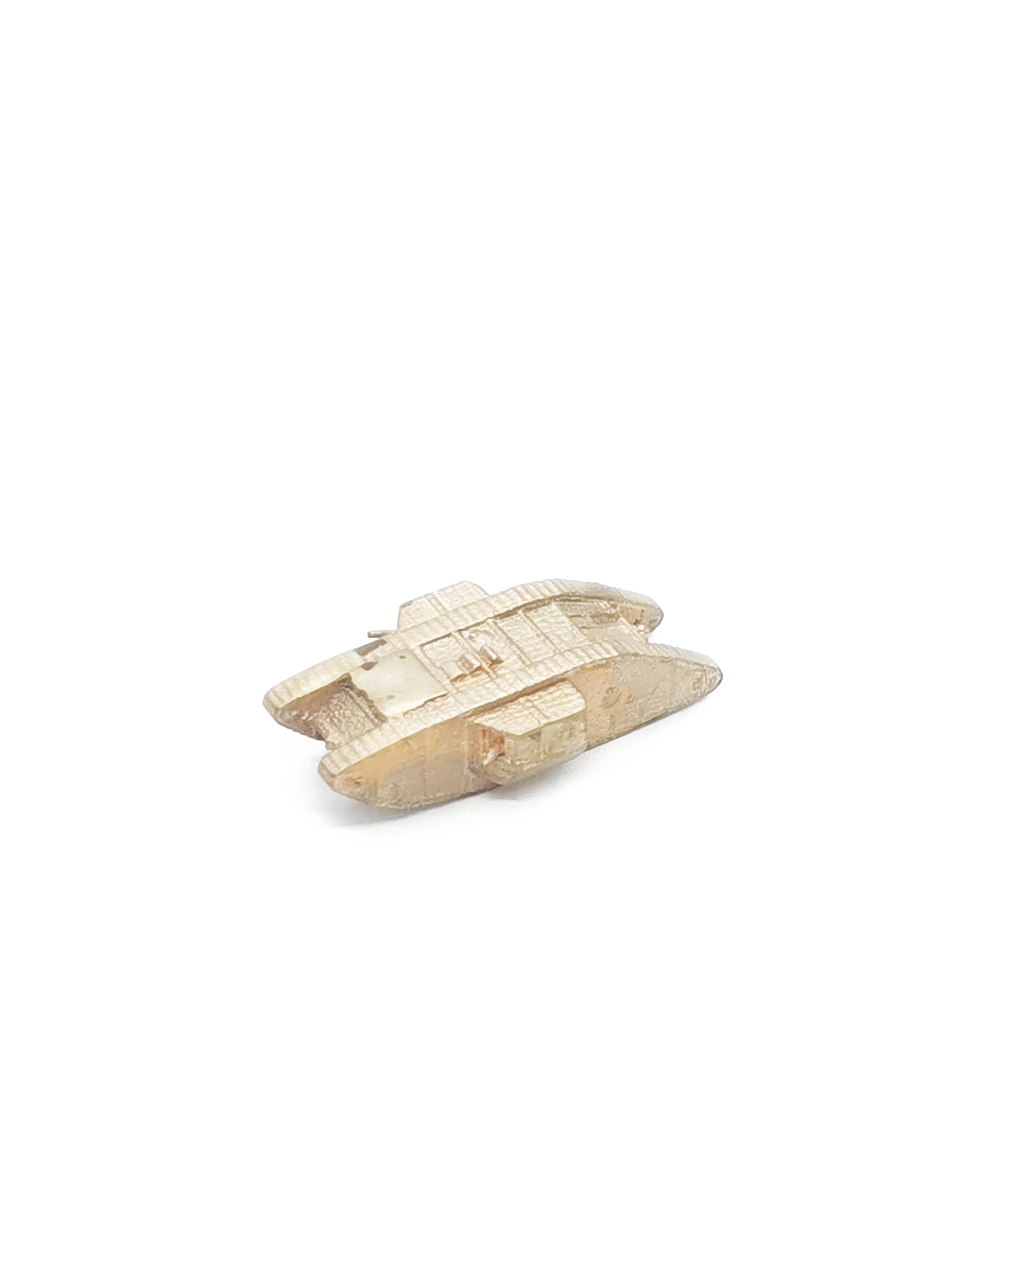 Brass MkI Male Tank Miniature